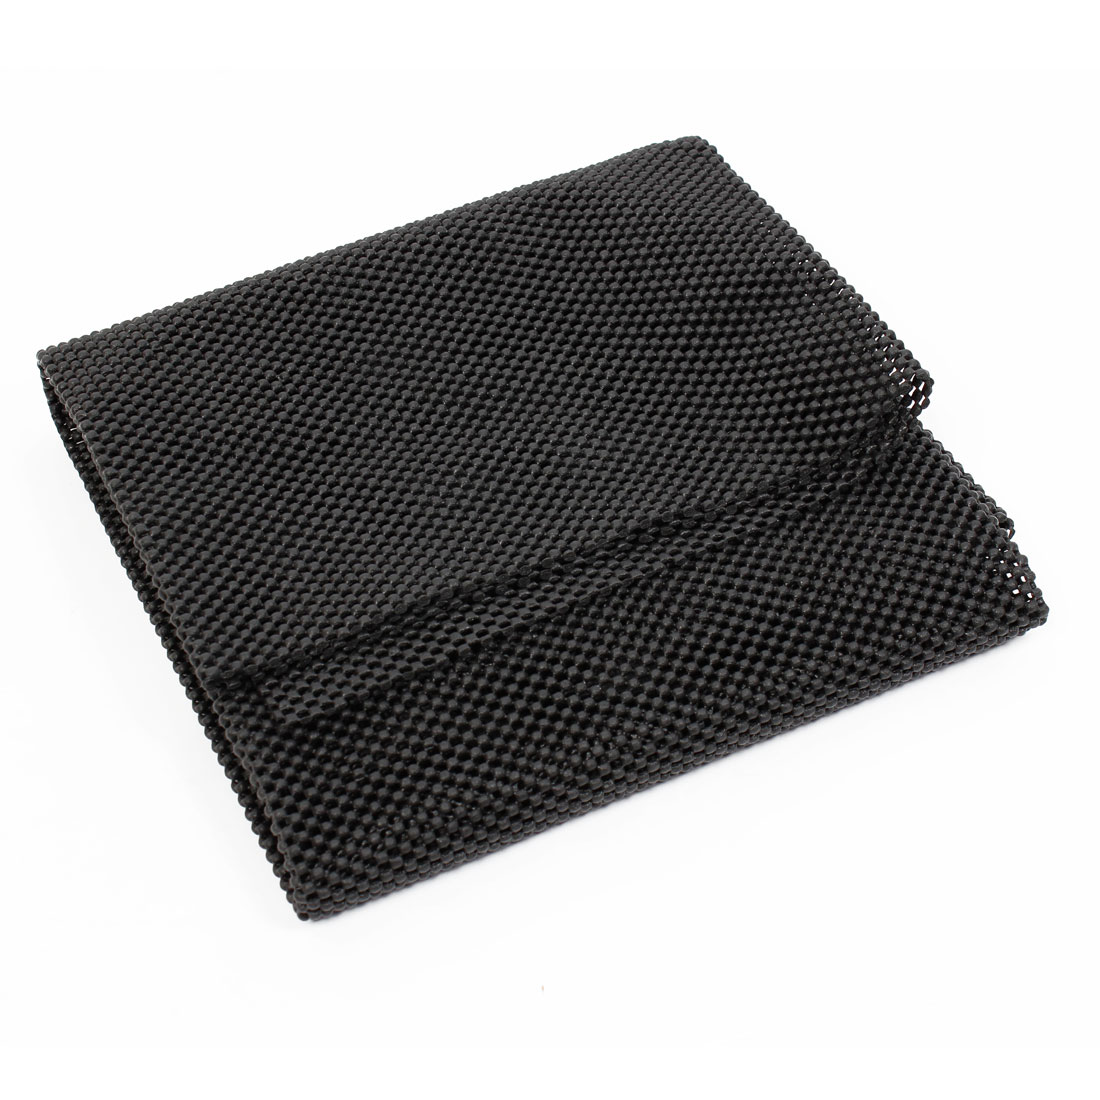 100cm x 80cm Black Soft Foam Tail Box Anti-skid Pad Cushion for Car